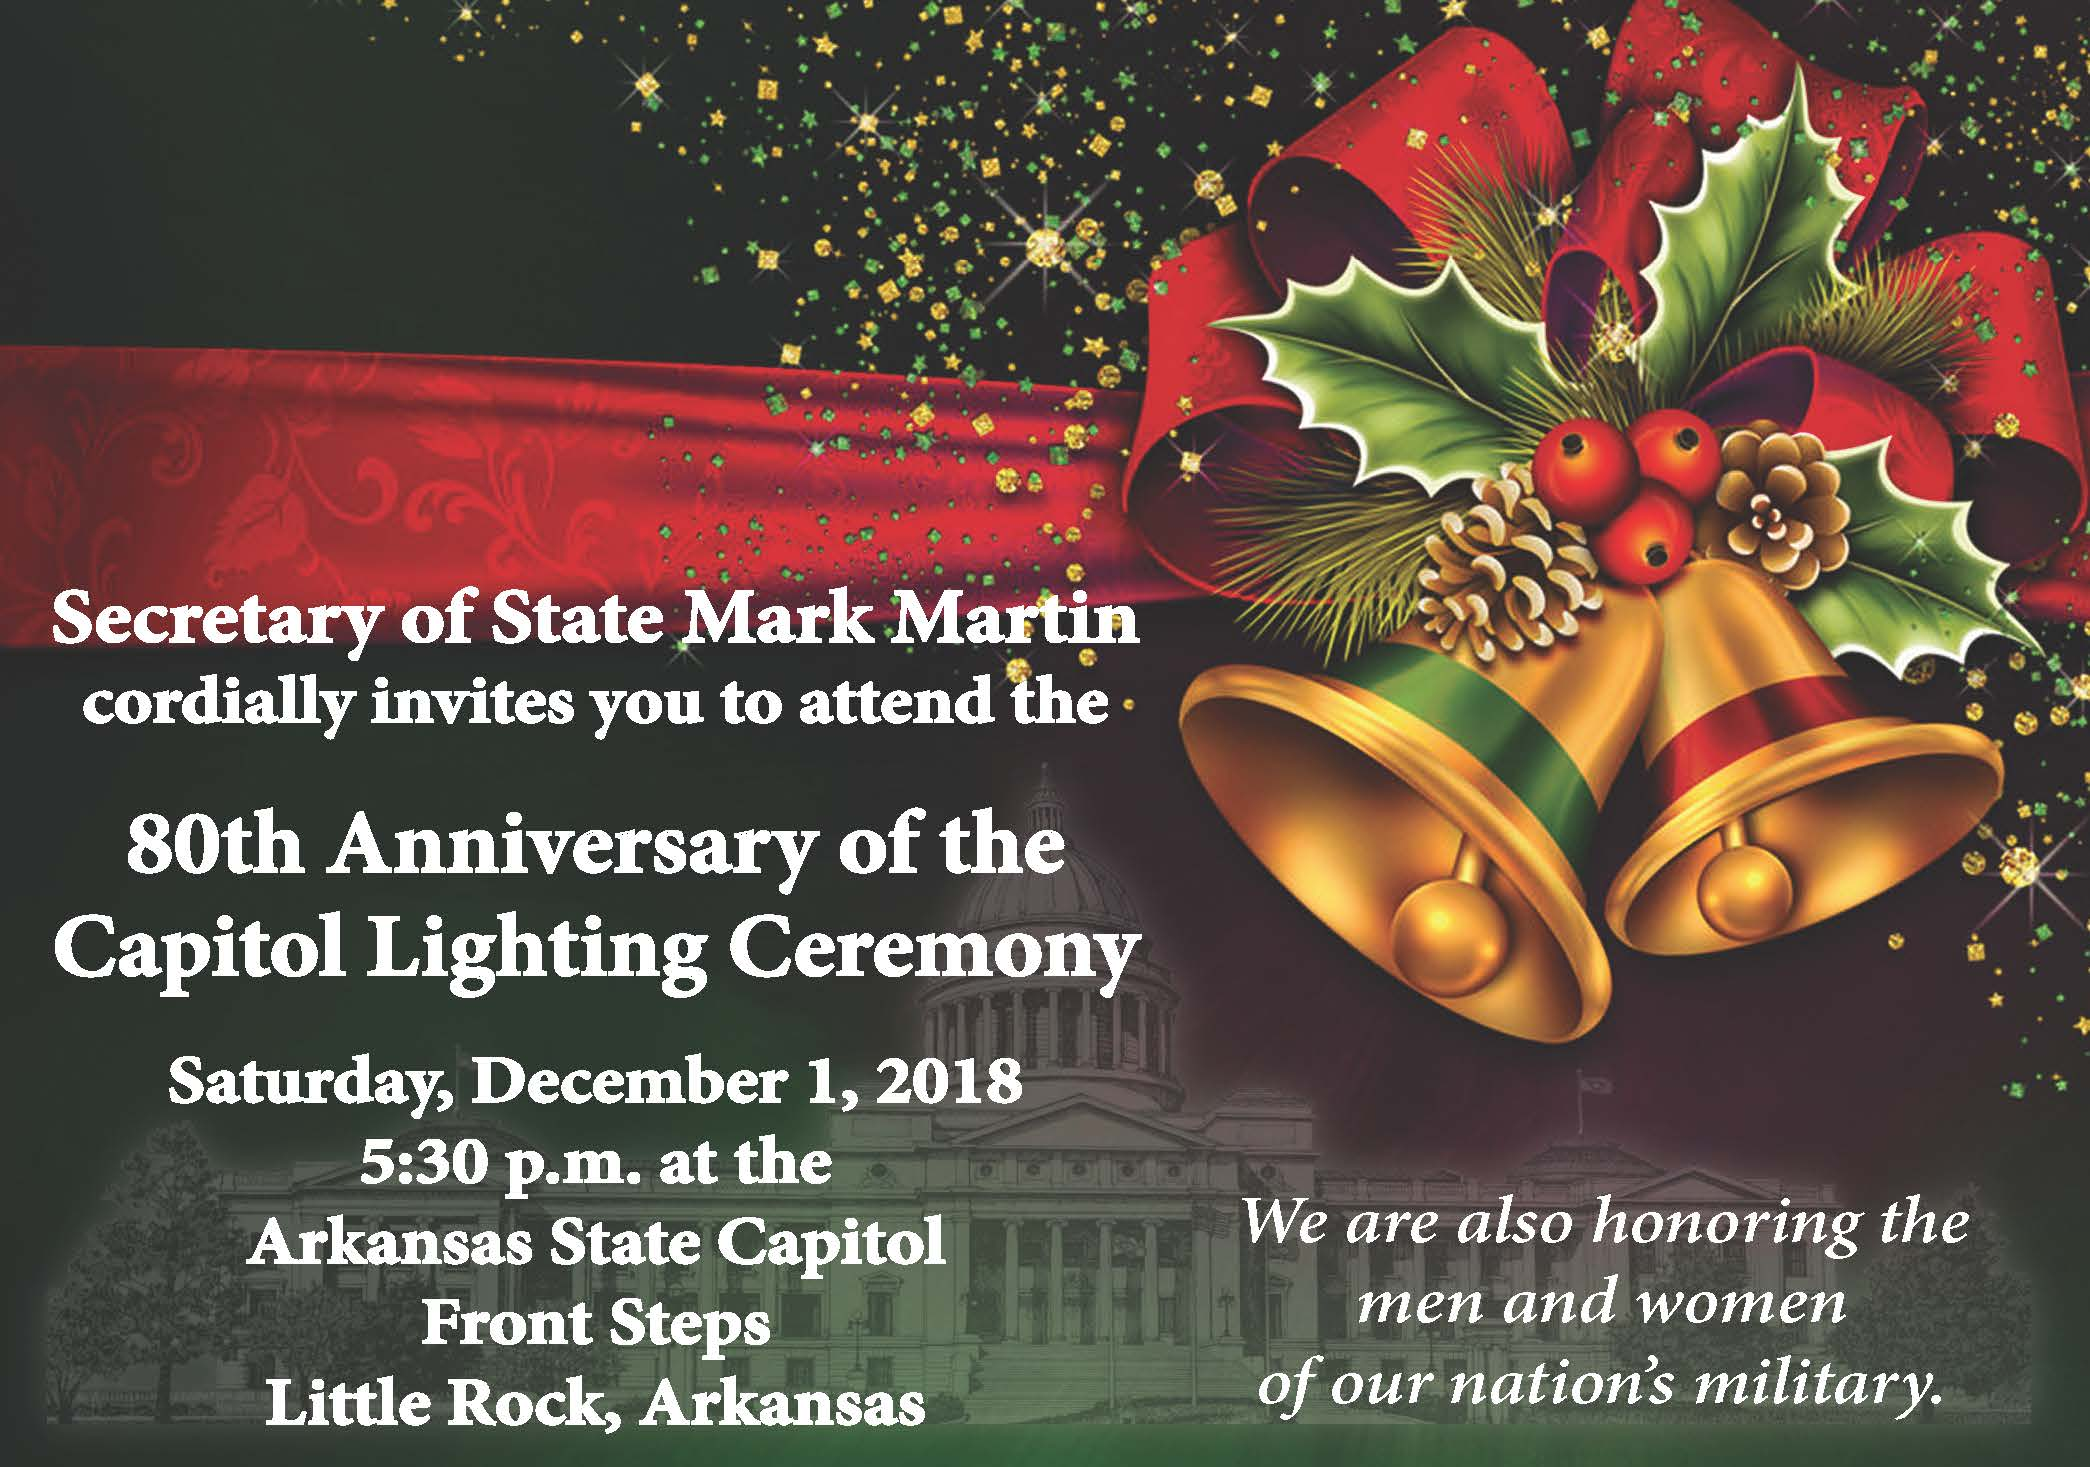 Capitol Lighting Ceremony set for Saturday